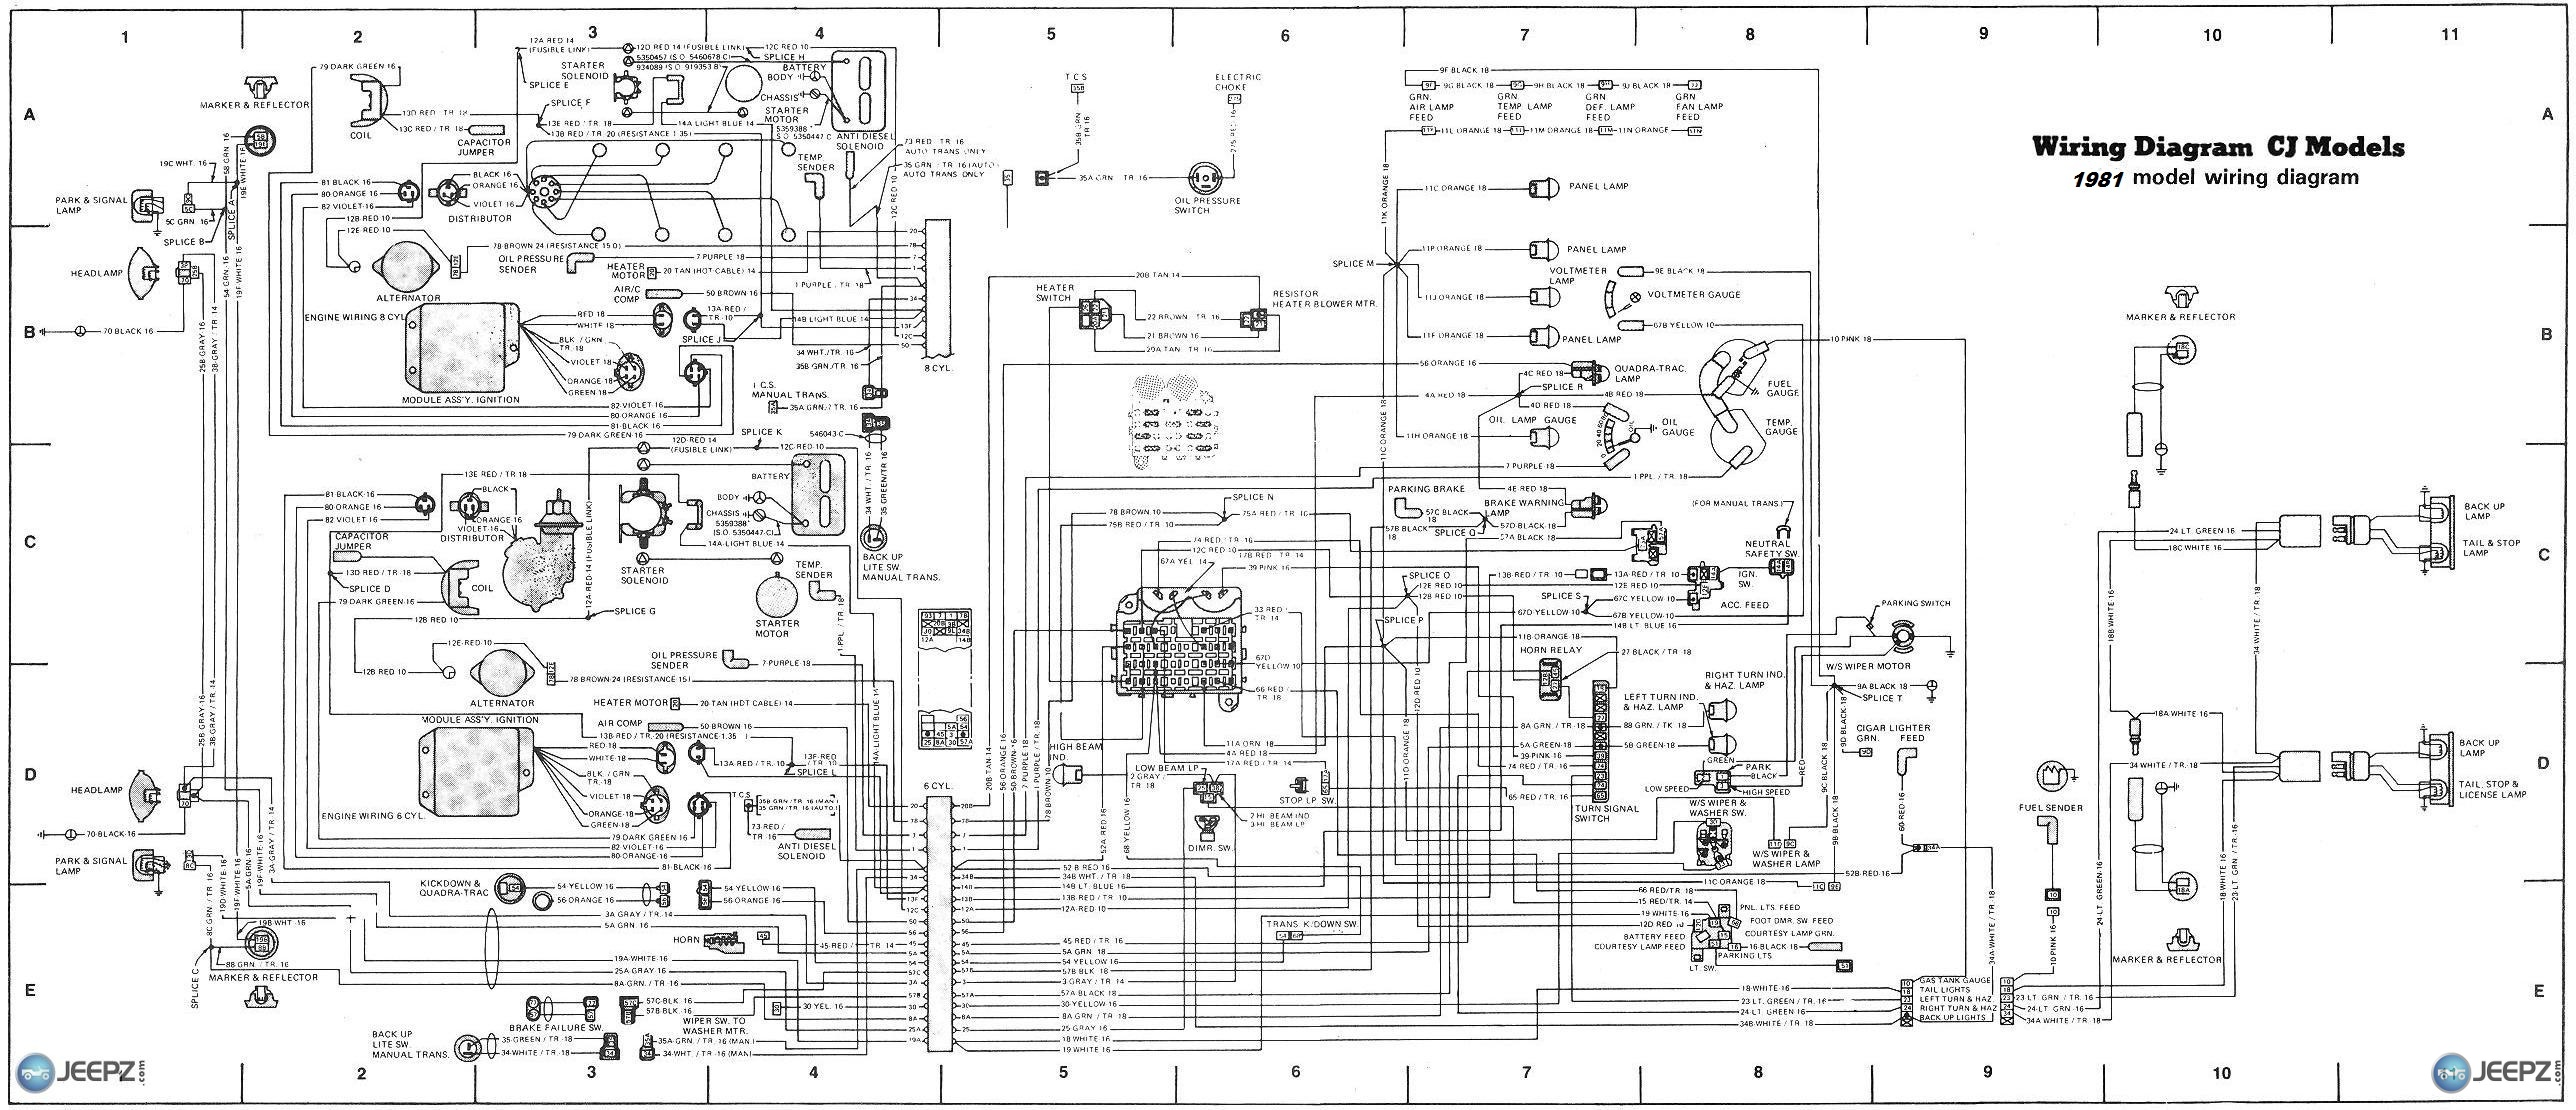 Pdf Jeep Wiring Diagrams 2004 Grand Cherokee Diagram Will Wj Fuse Cj5 Schematic Data Schema Rh Site De Joueurs Com 2003 Schematics